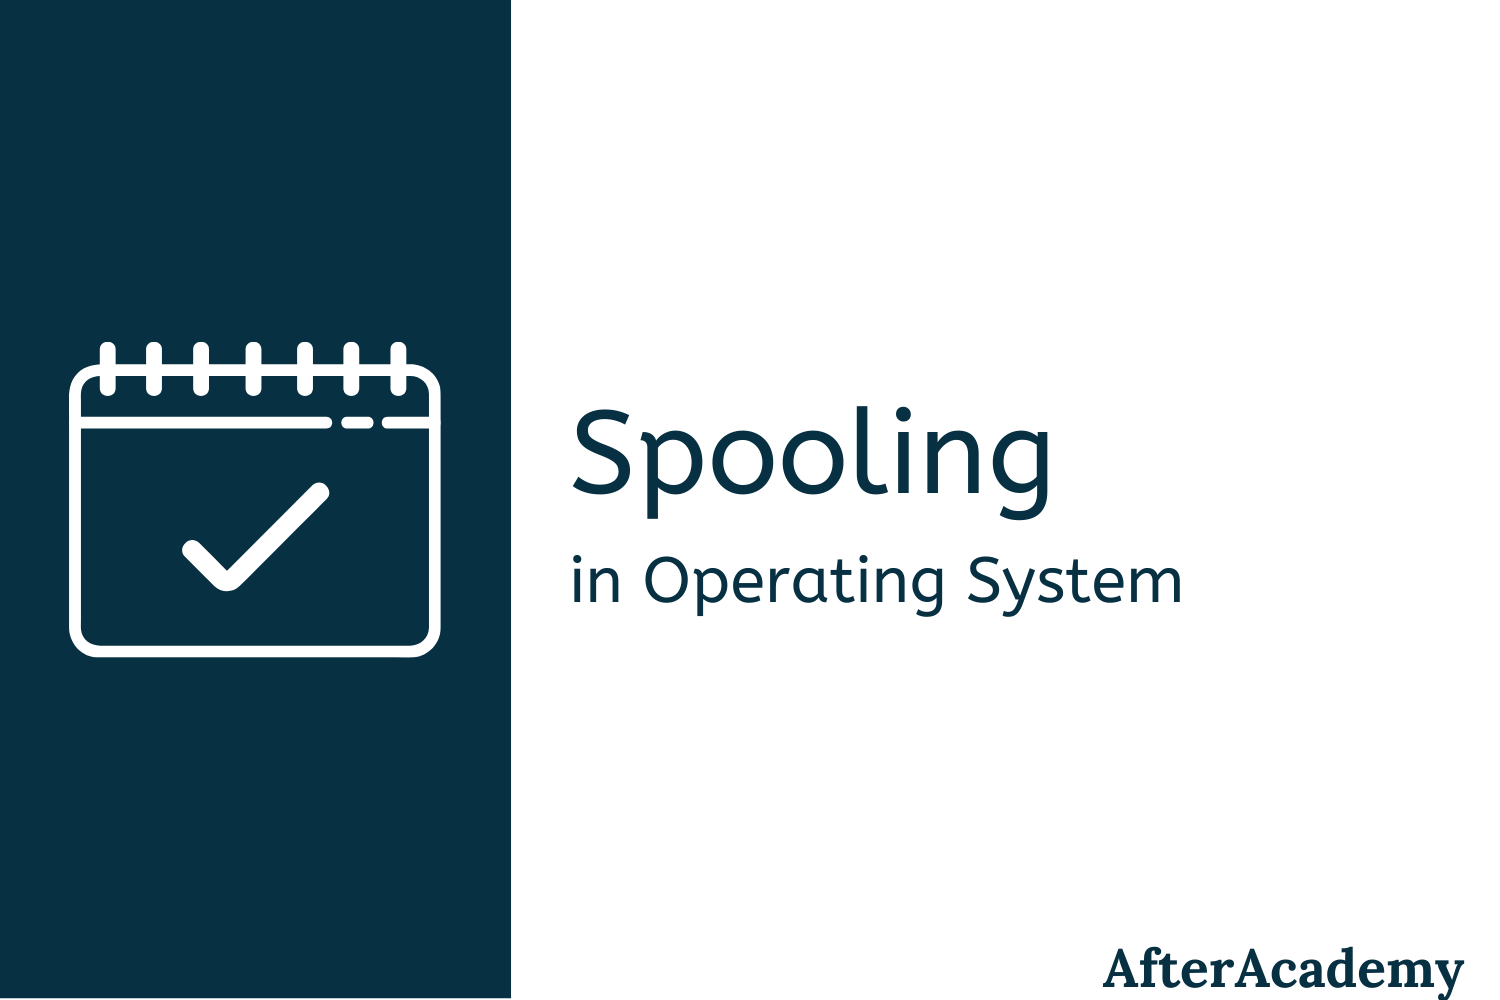 What is Spooling in Operating System?